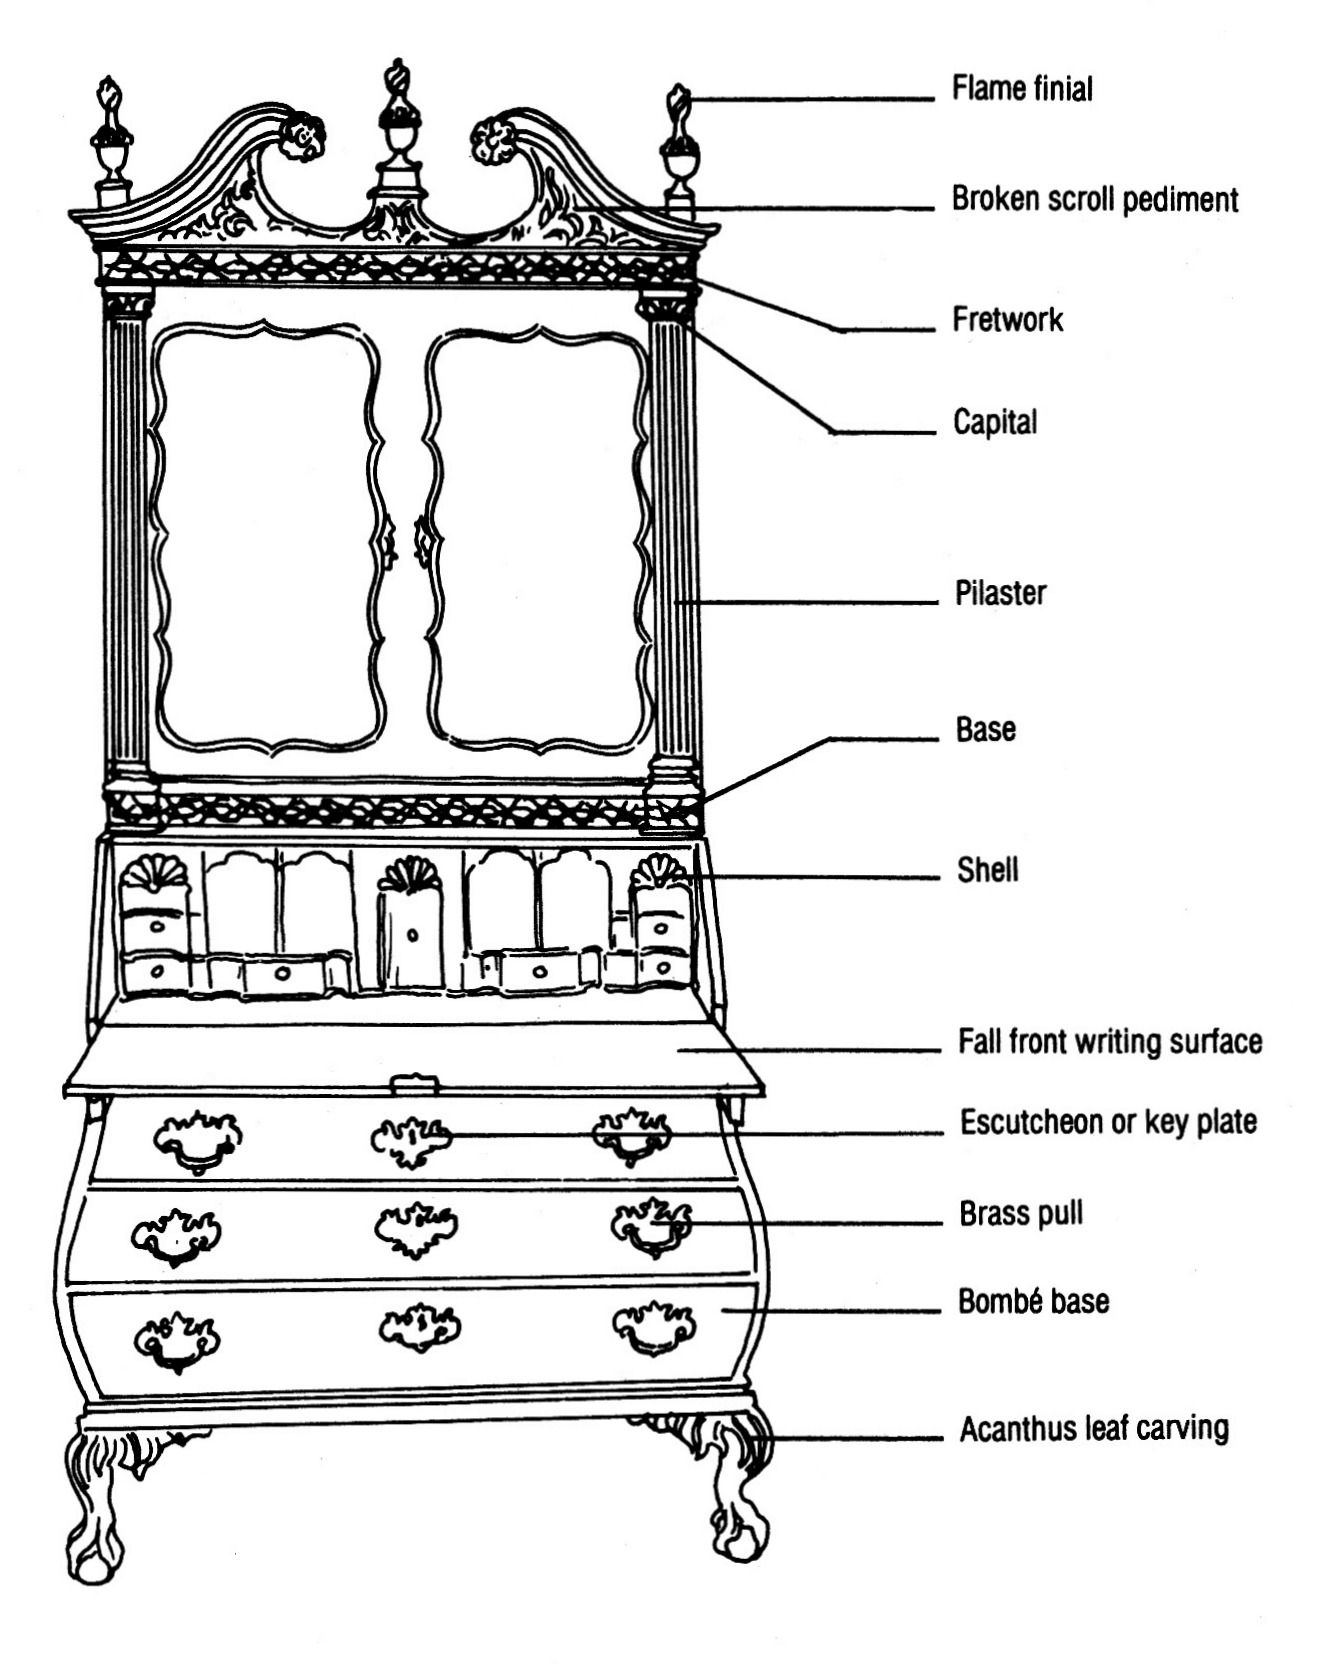 diagram of chippendale desk and bookcase - 1770